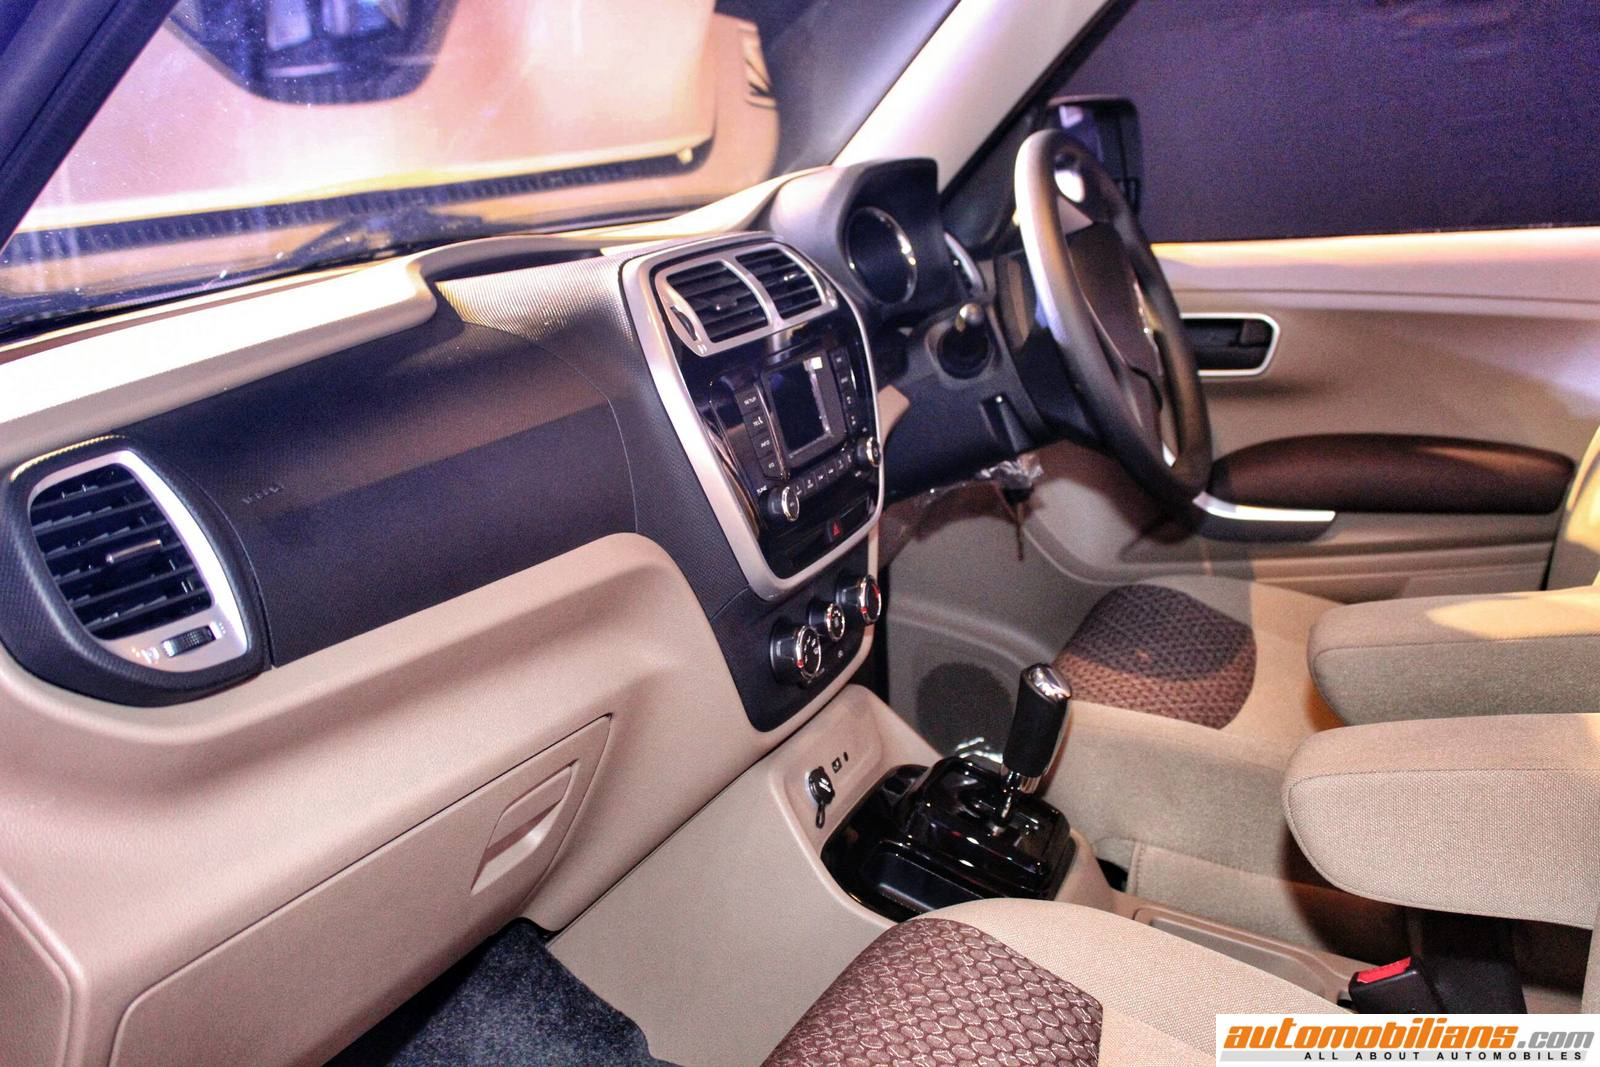 mahindra mahindra mahindra tuv300 tuv300 tuv 300 first drive tuv300 first drive review. Black Bedroom Furniture Sets. Home Design Ideas